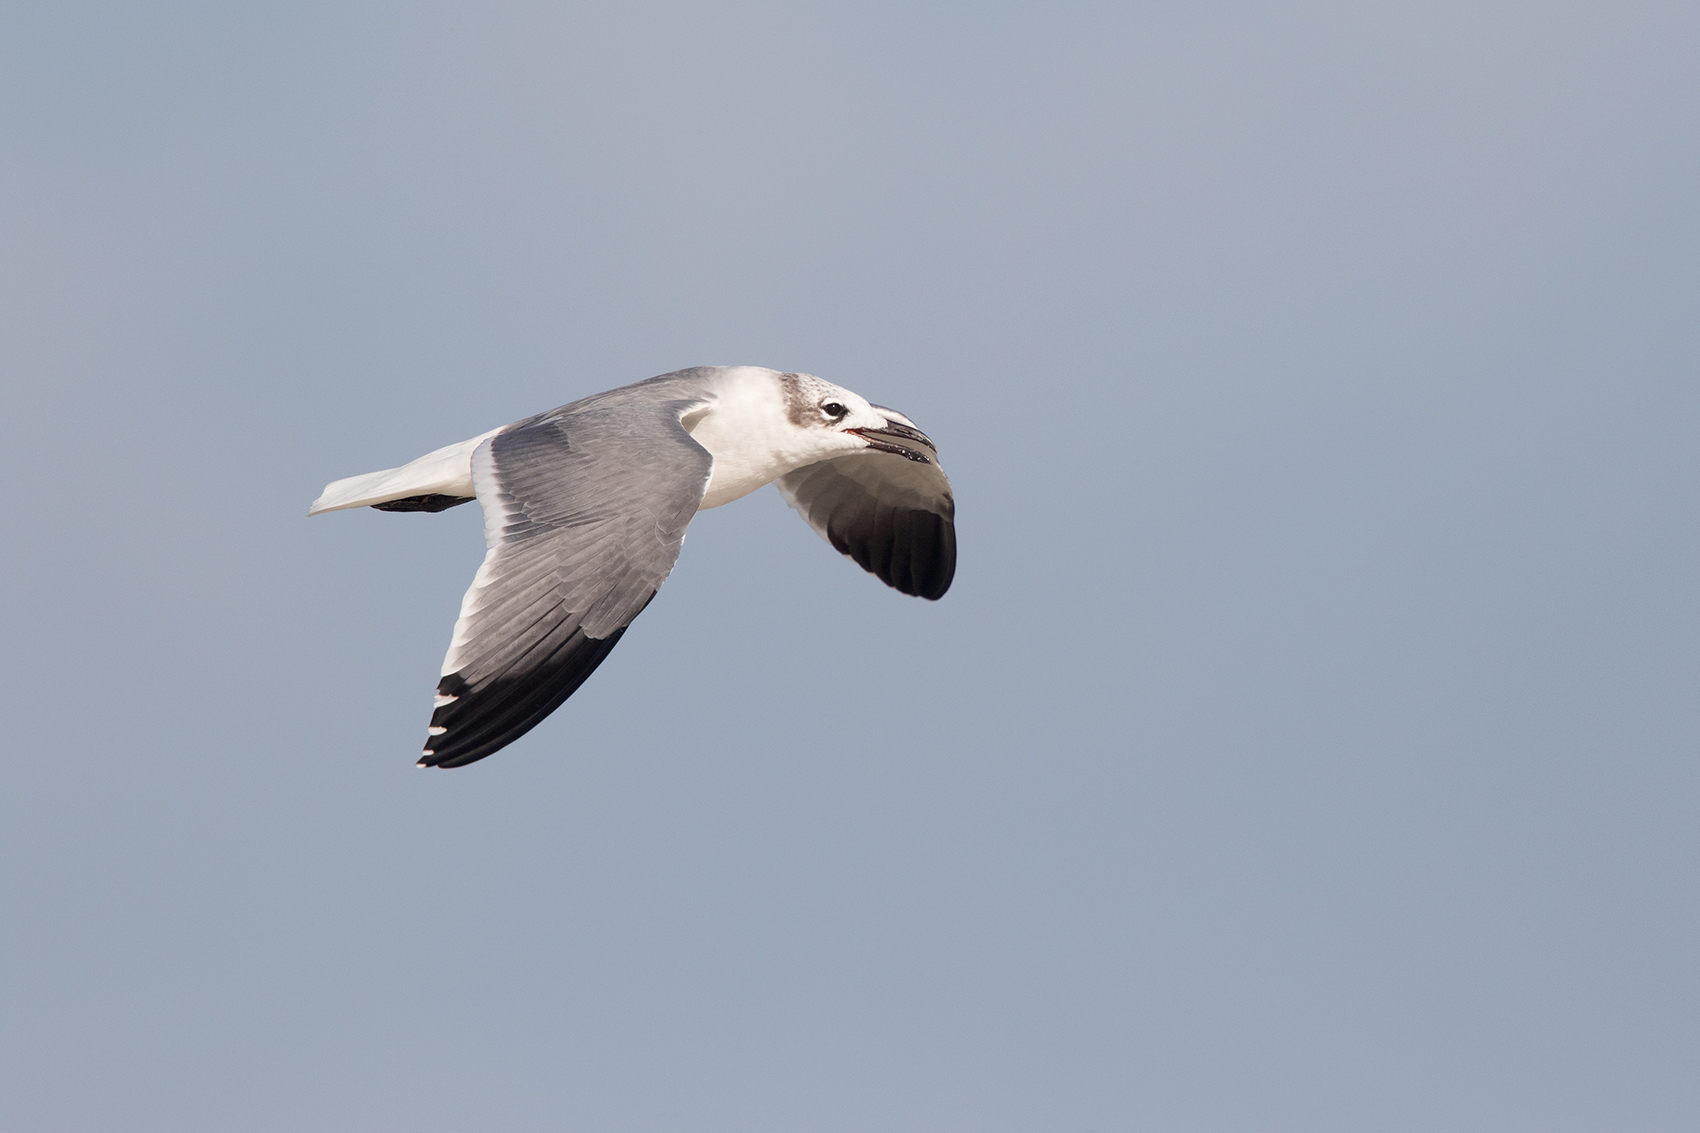 LAUGHING GULL - GALVESTON COUNTY TX NOV. 2016